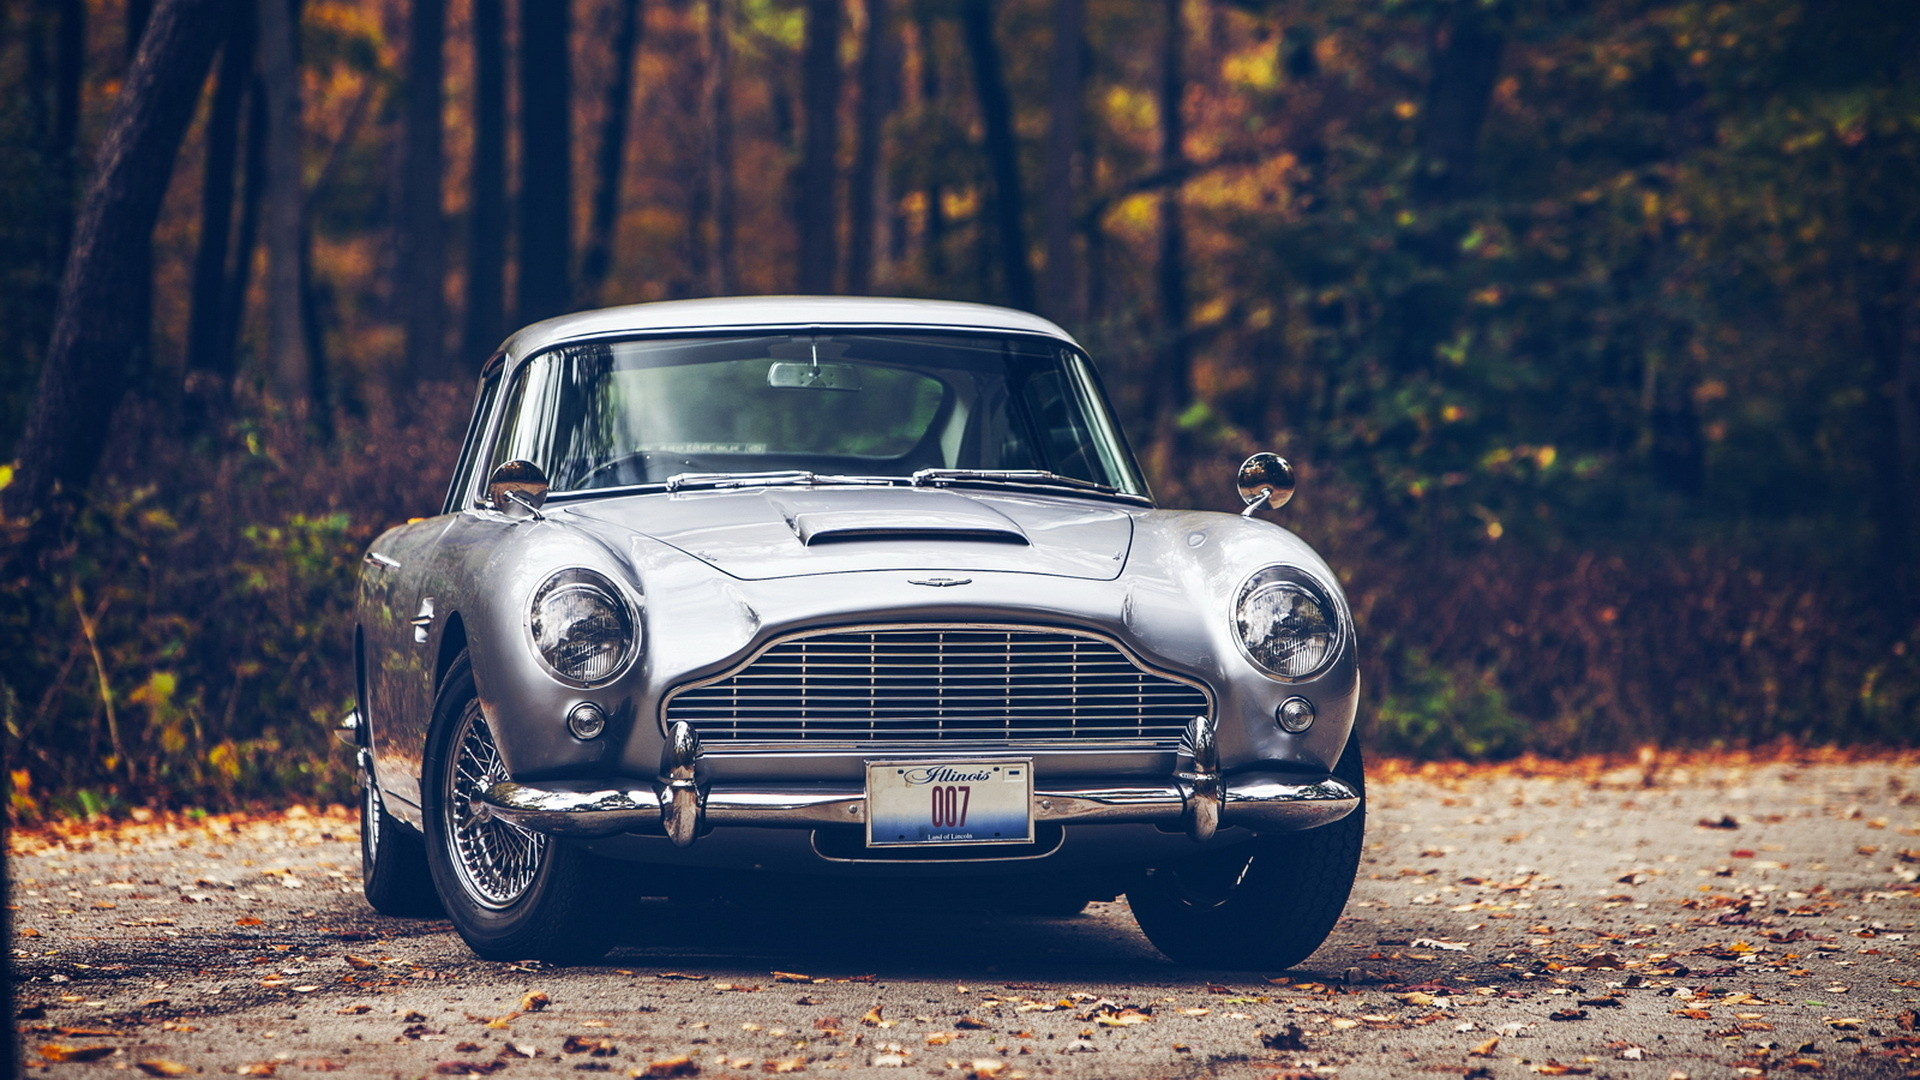 1920x1080 Preview wallpaper car, db5, aston martin